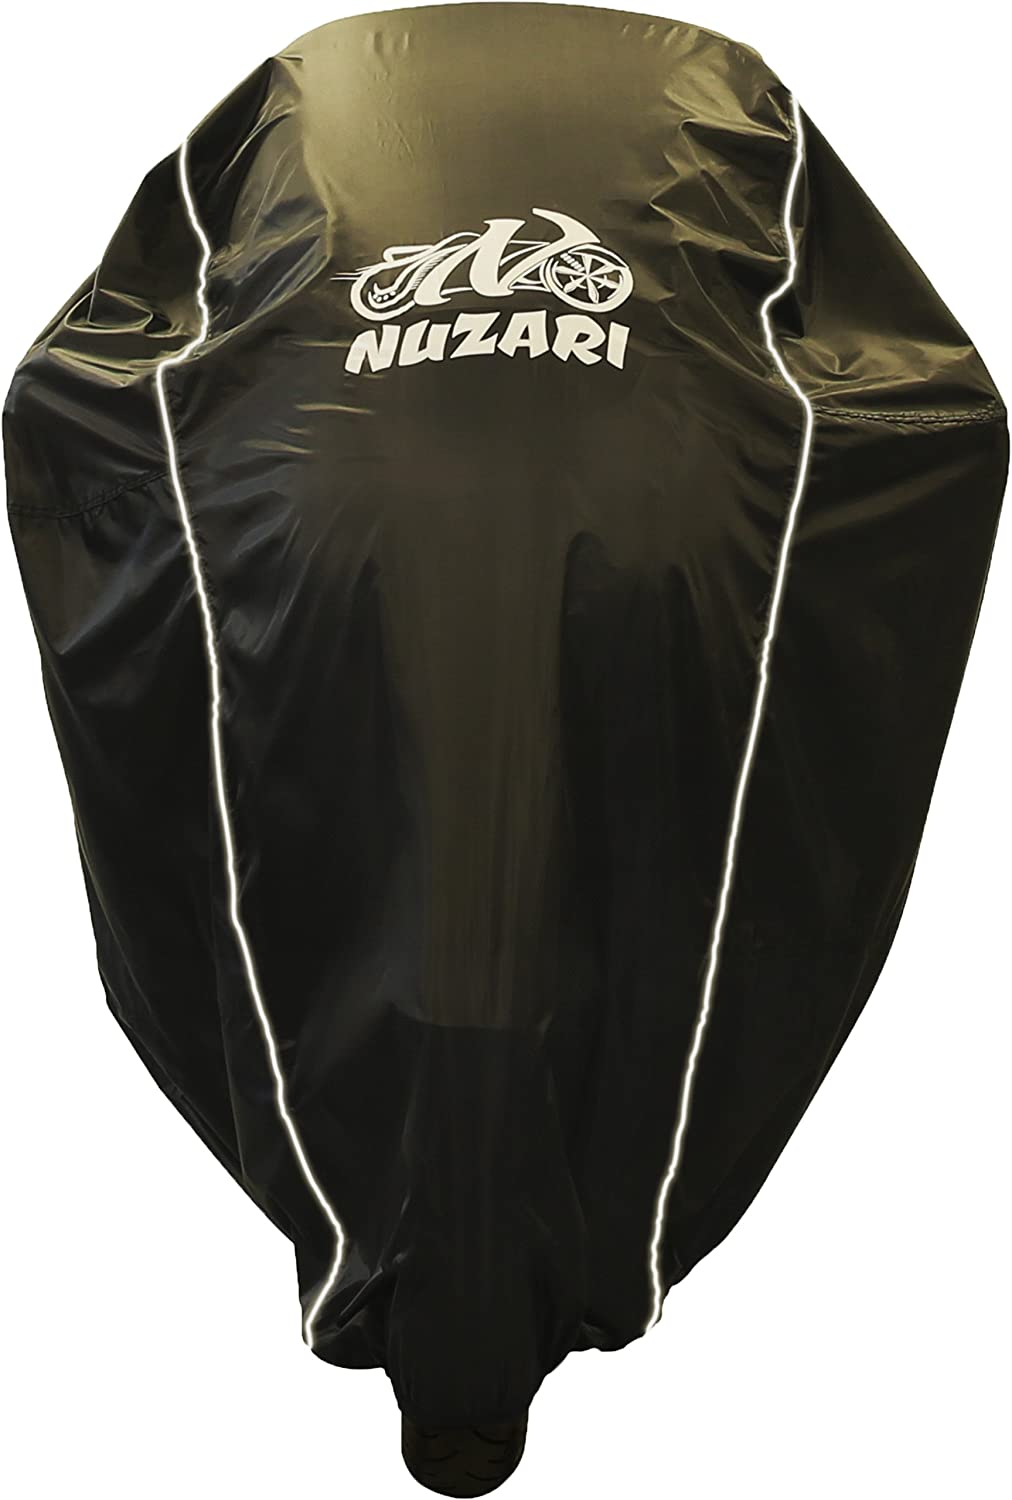 Attention brand Premium Motorcycle Accessories - Out Waterproof Cover Super-cheap